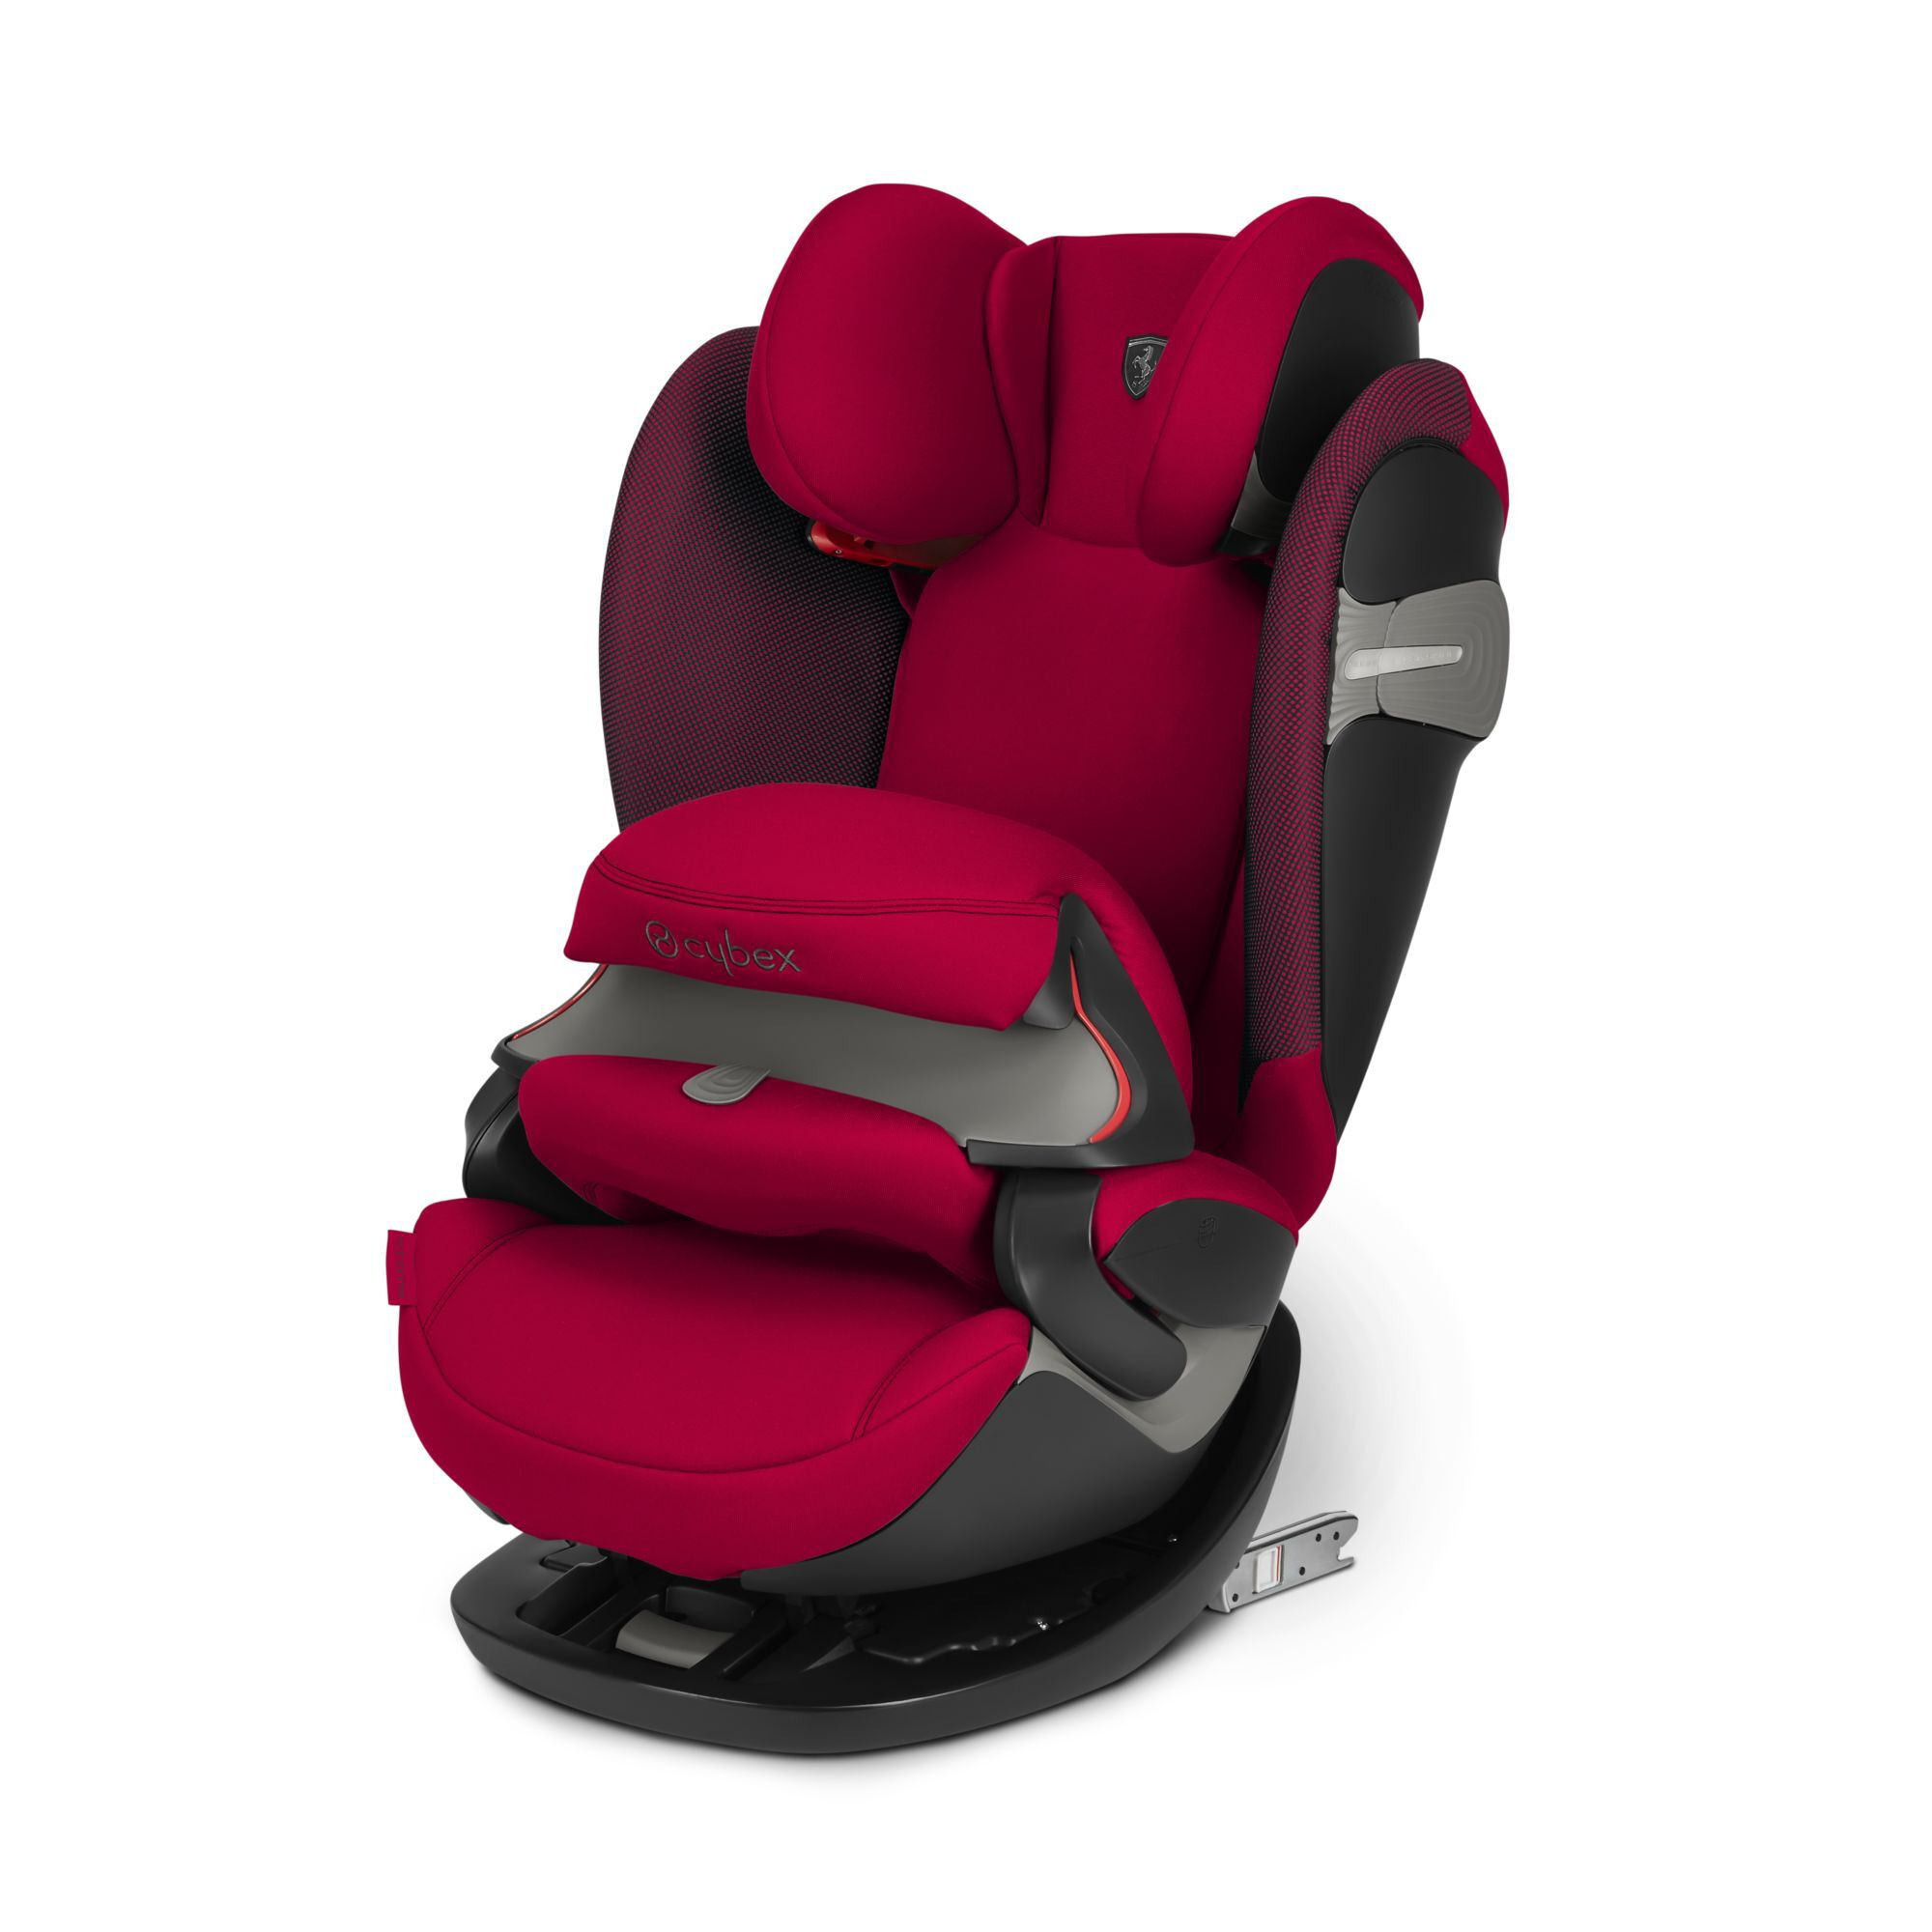 cybex scuderia ferrari child car seat pallas s fix 2020 racing red red buy at kidsroom car. Black Bedroom Furniture Sets. Home Design Ideas